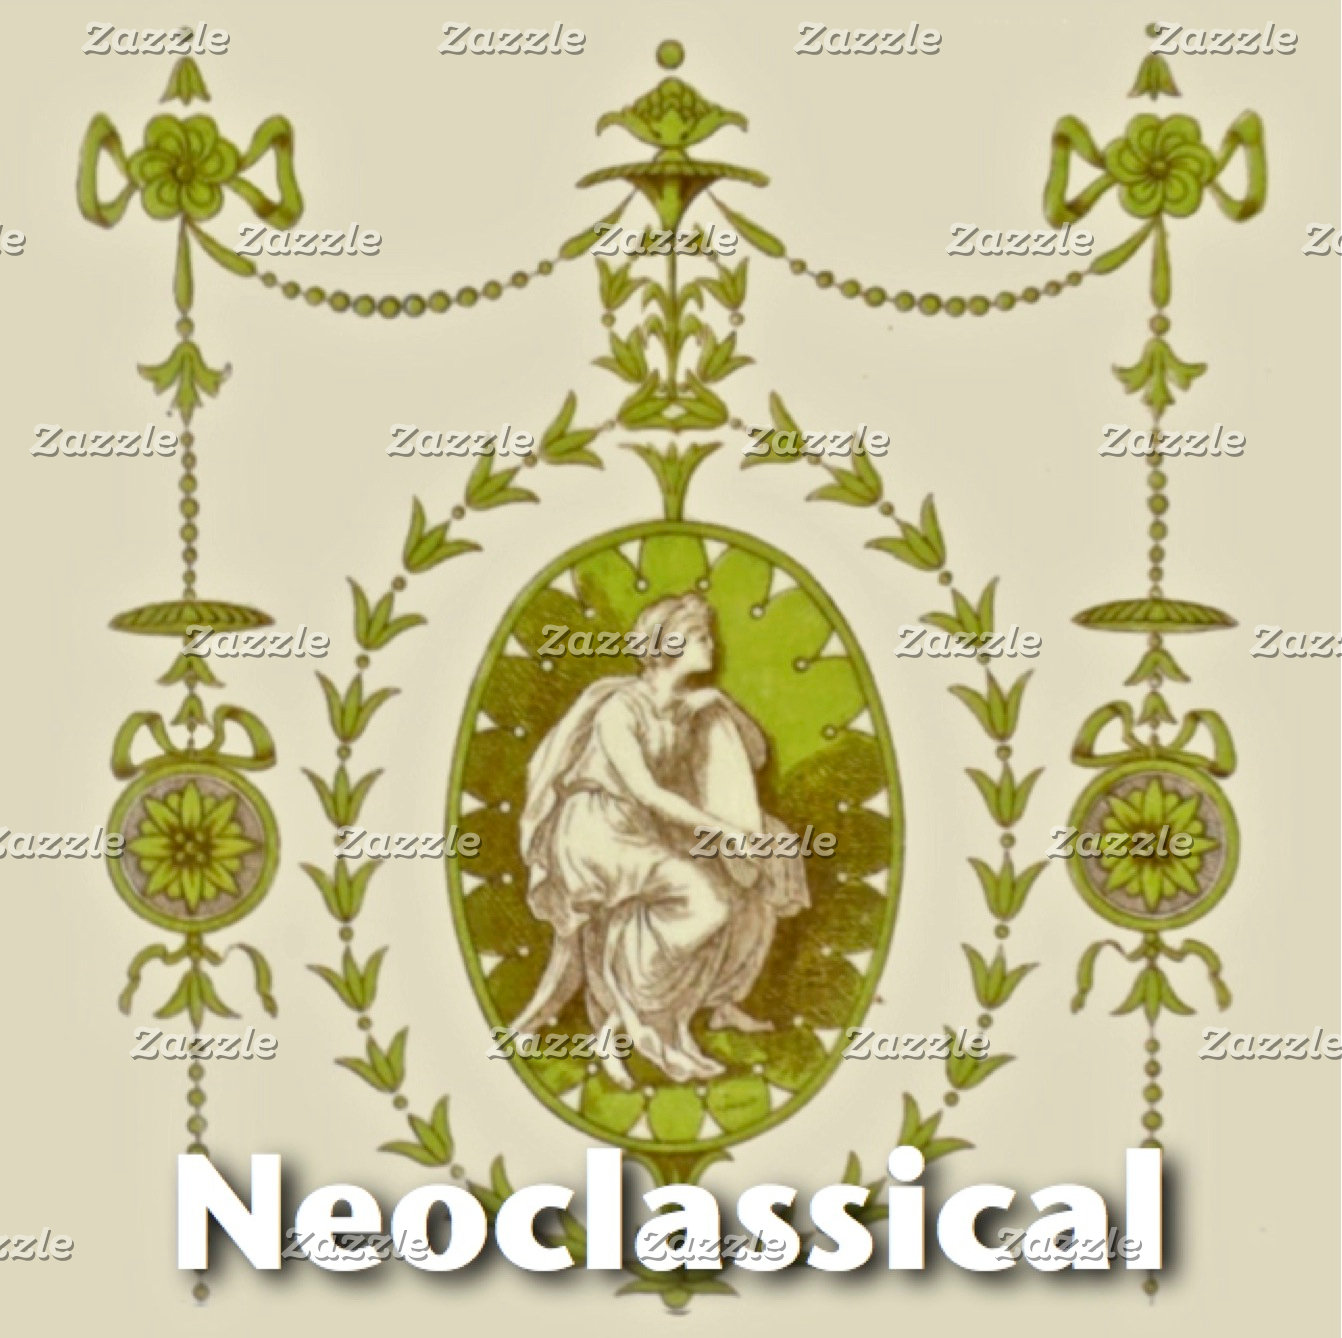 Neoclassical